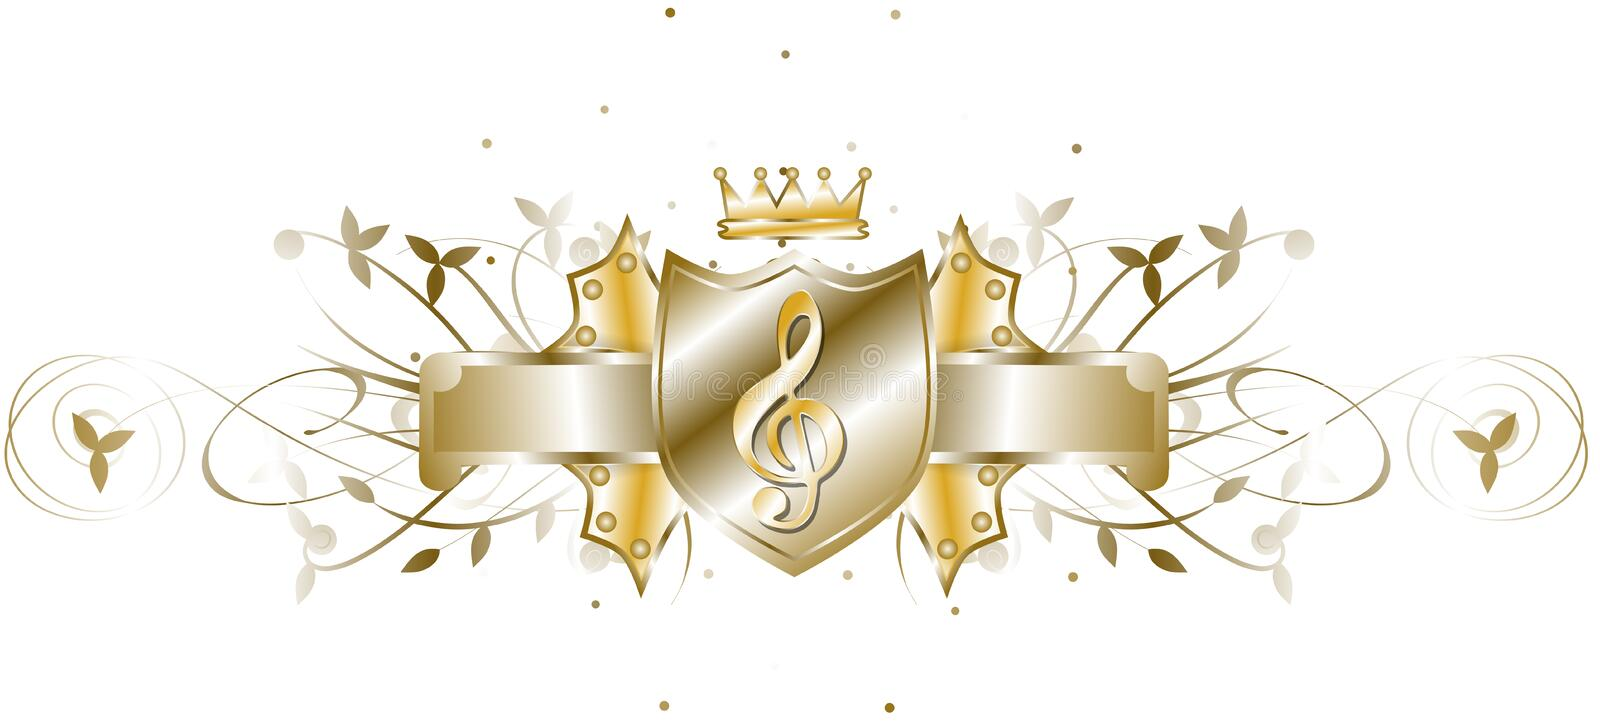 Elegant treble clef on shield isolated. Image representing an elegant treble clef, usable for t shirt design, decorations or music projects vector illustration